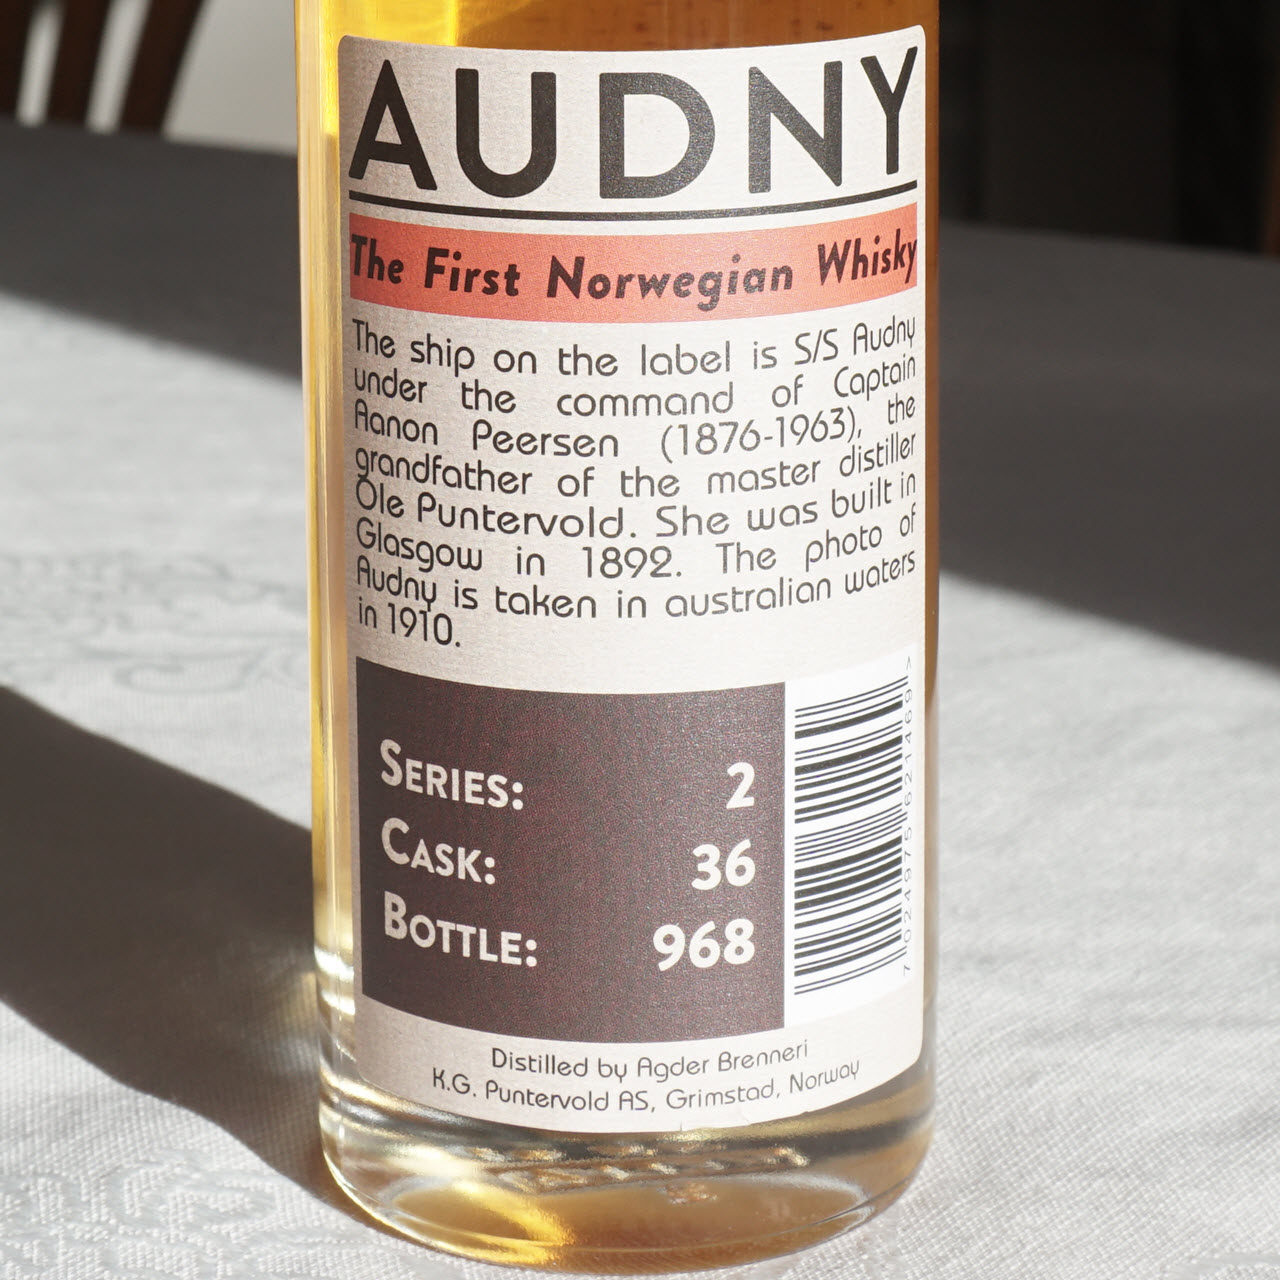 Audny Series 2 Single Cask - back label